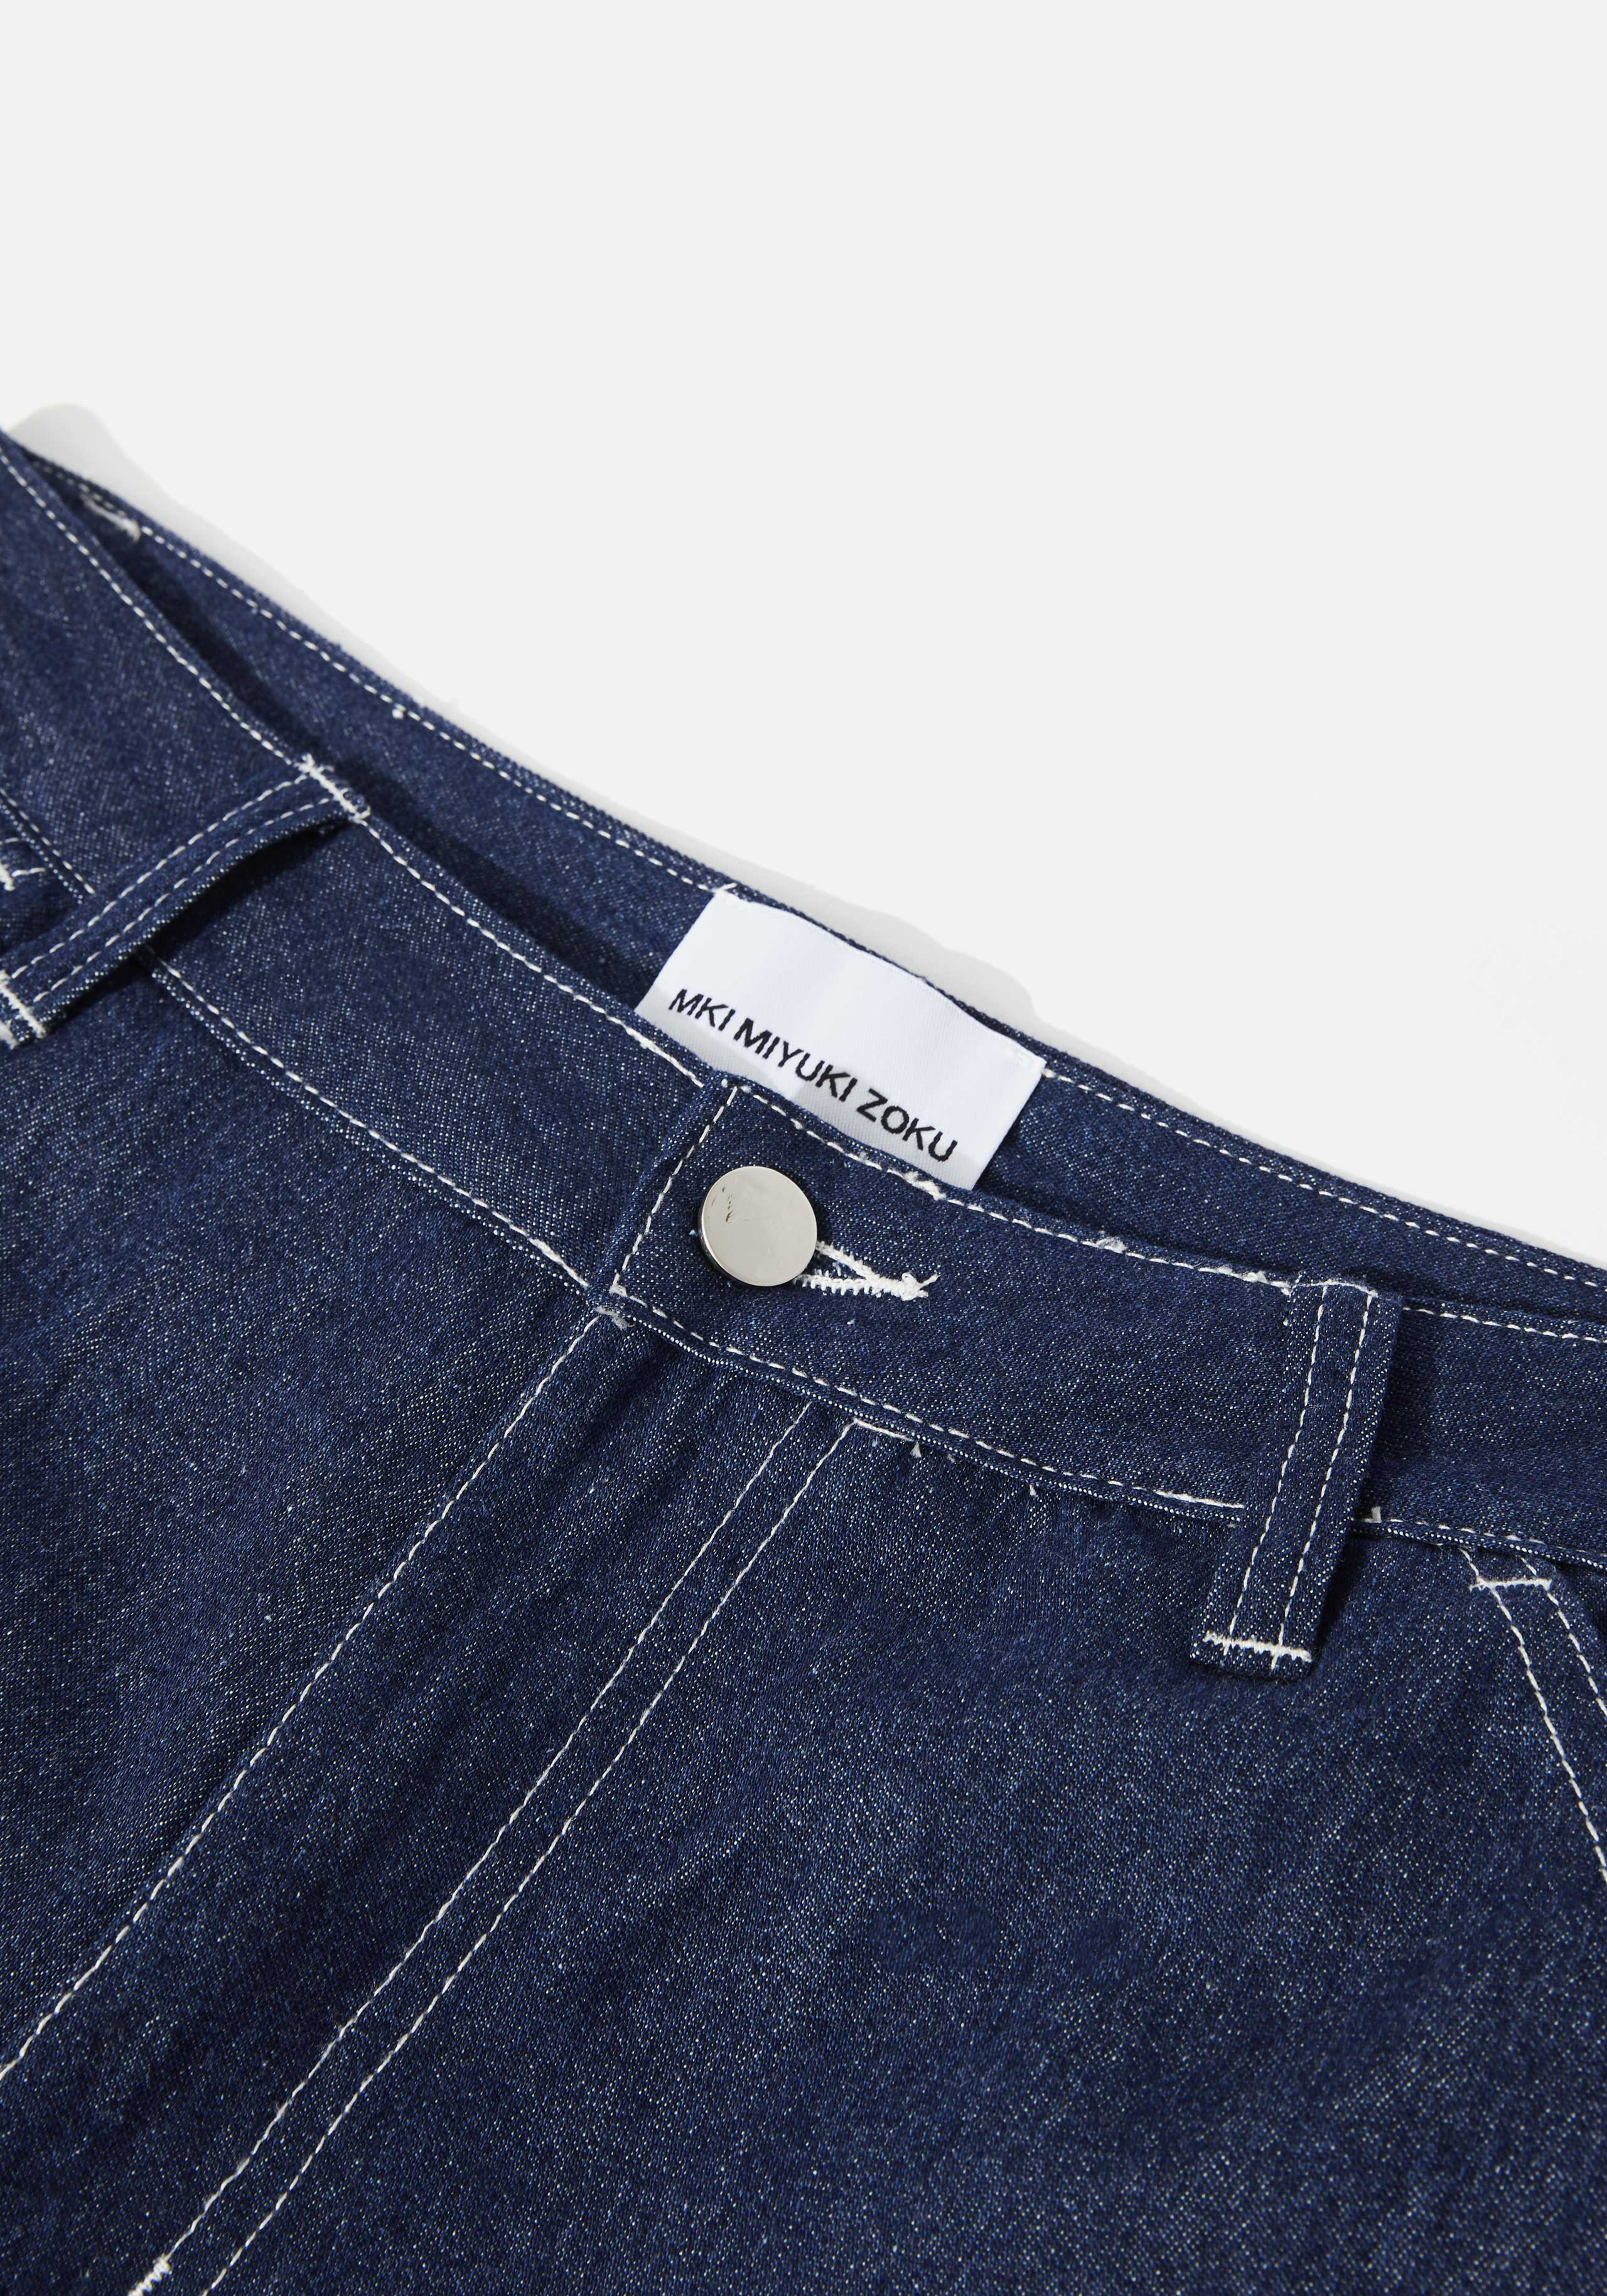 mki denim carpenter jeans 4